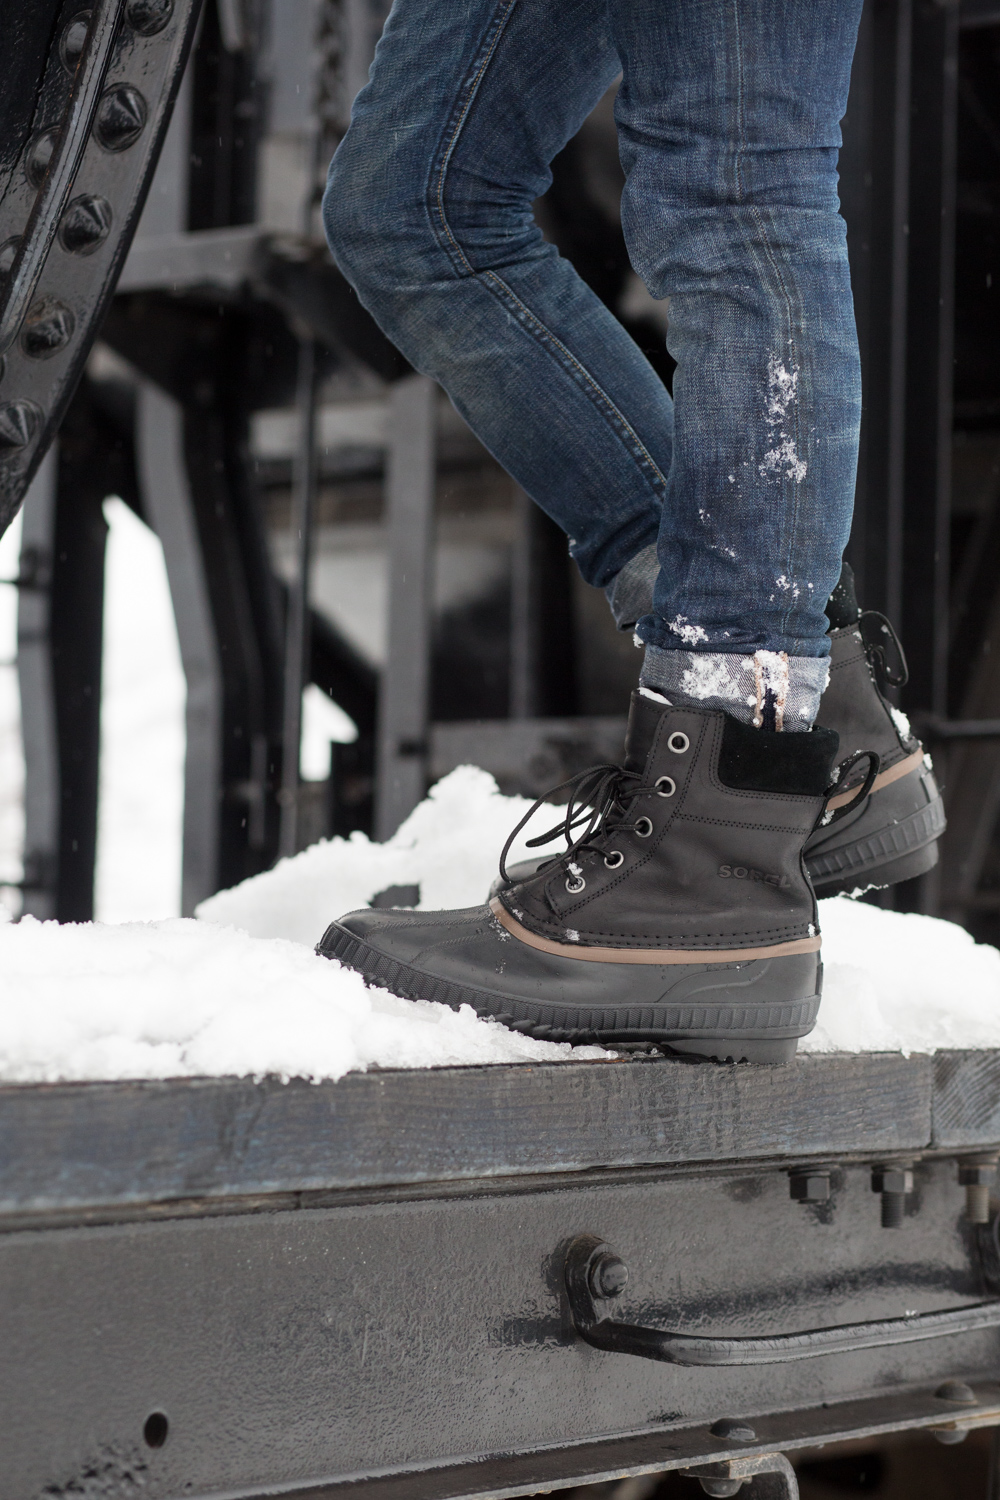 Sorel Duck Boots Menswear Winter Fashion Blog